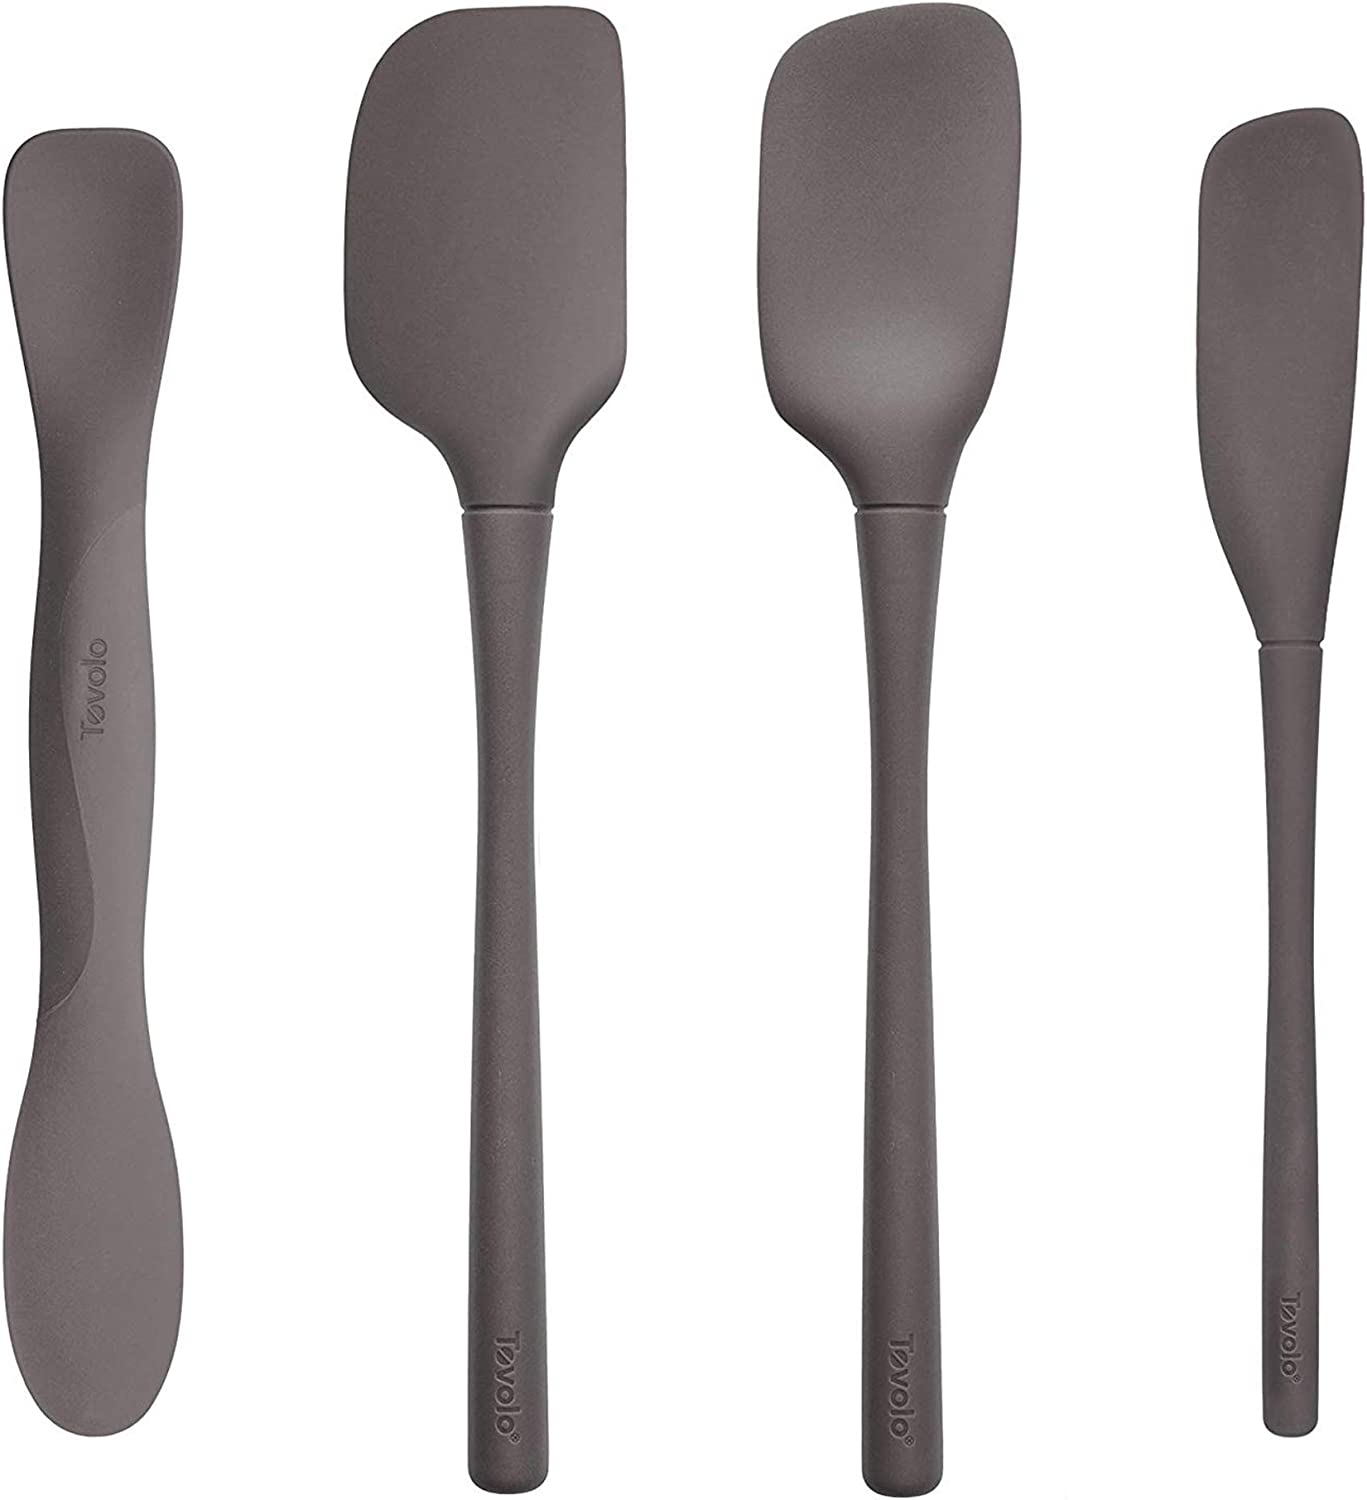 Tovolo All Silicone Tool Set, Charcoal - Set of 4